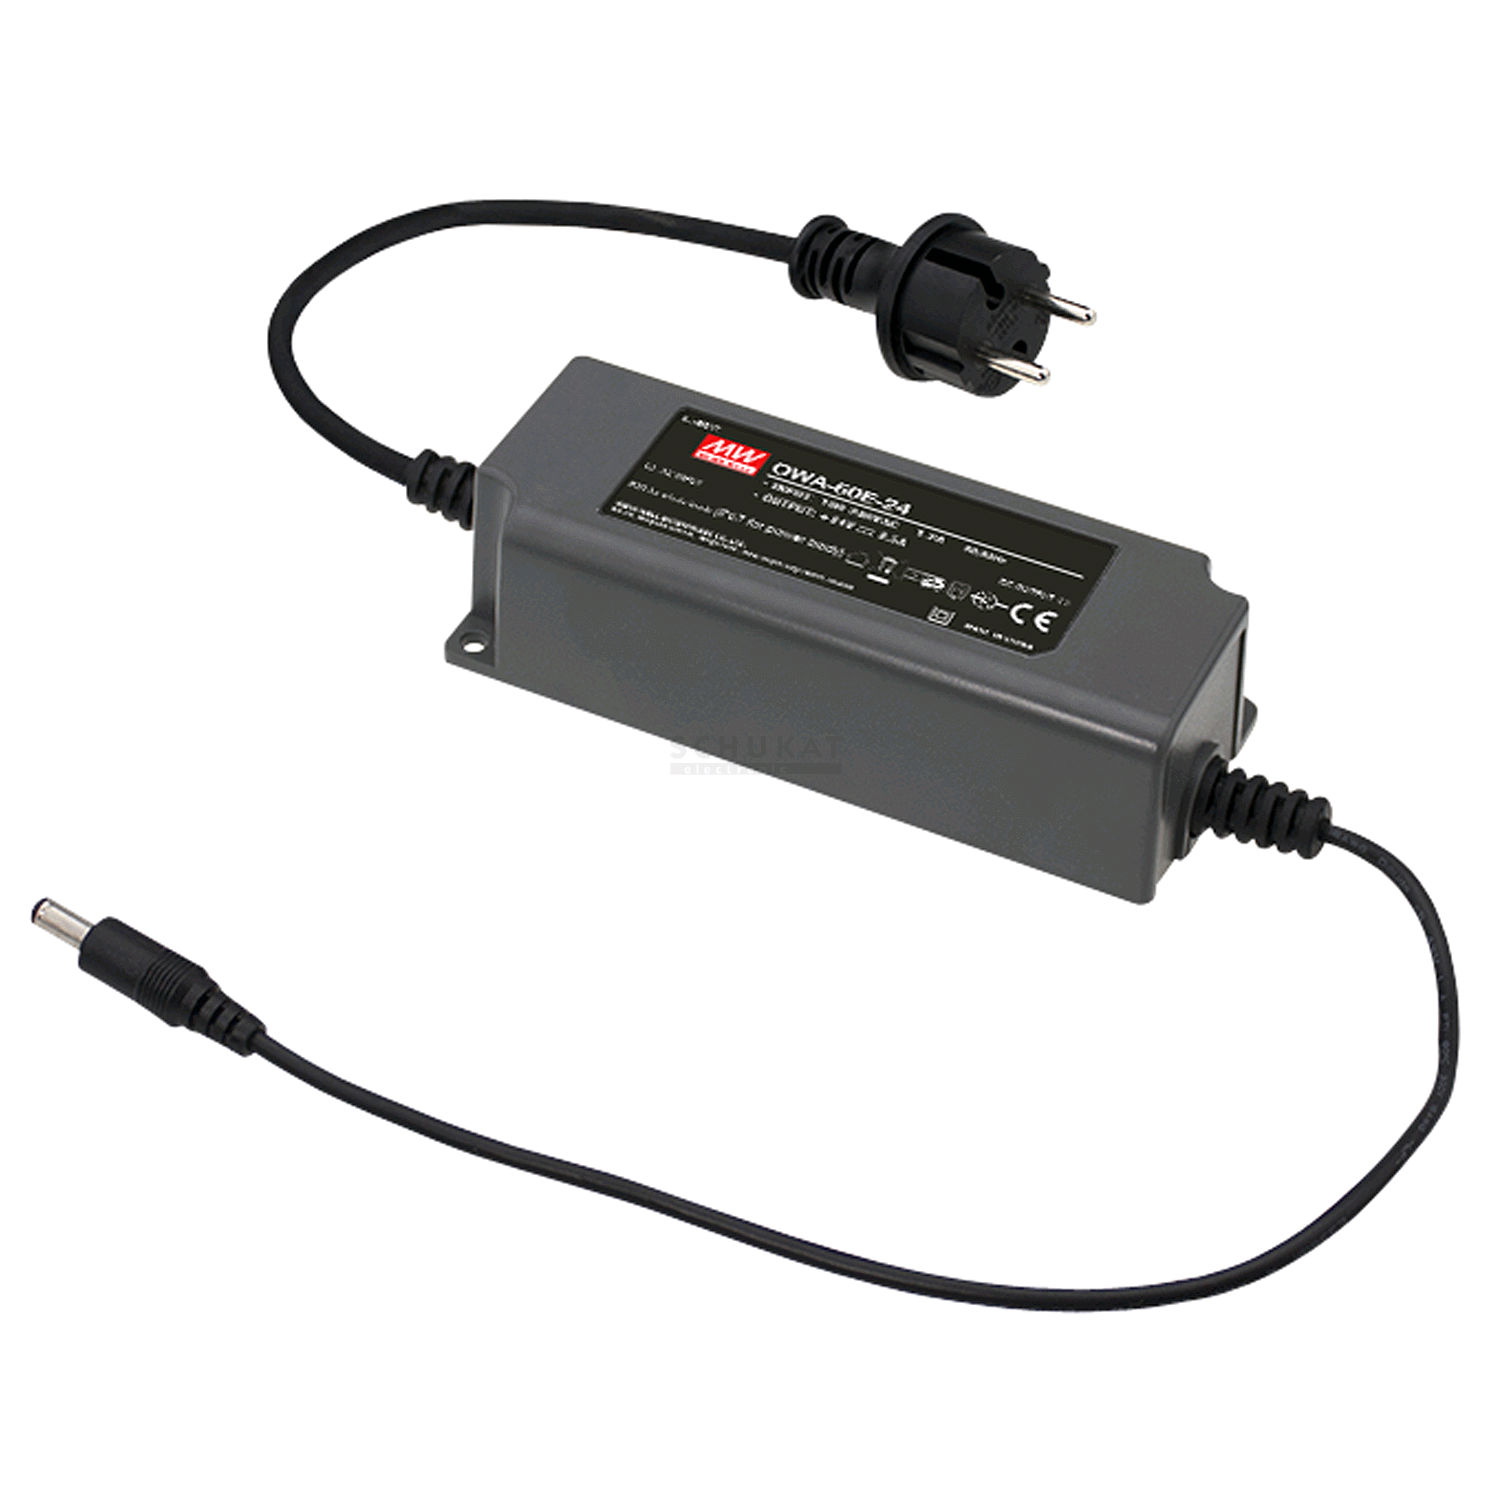 Meanwell Desktop Adaptor Series Owa 60e Plastic Case Ip67 Single 24v Power Supply 65a Output Dimensions Derating